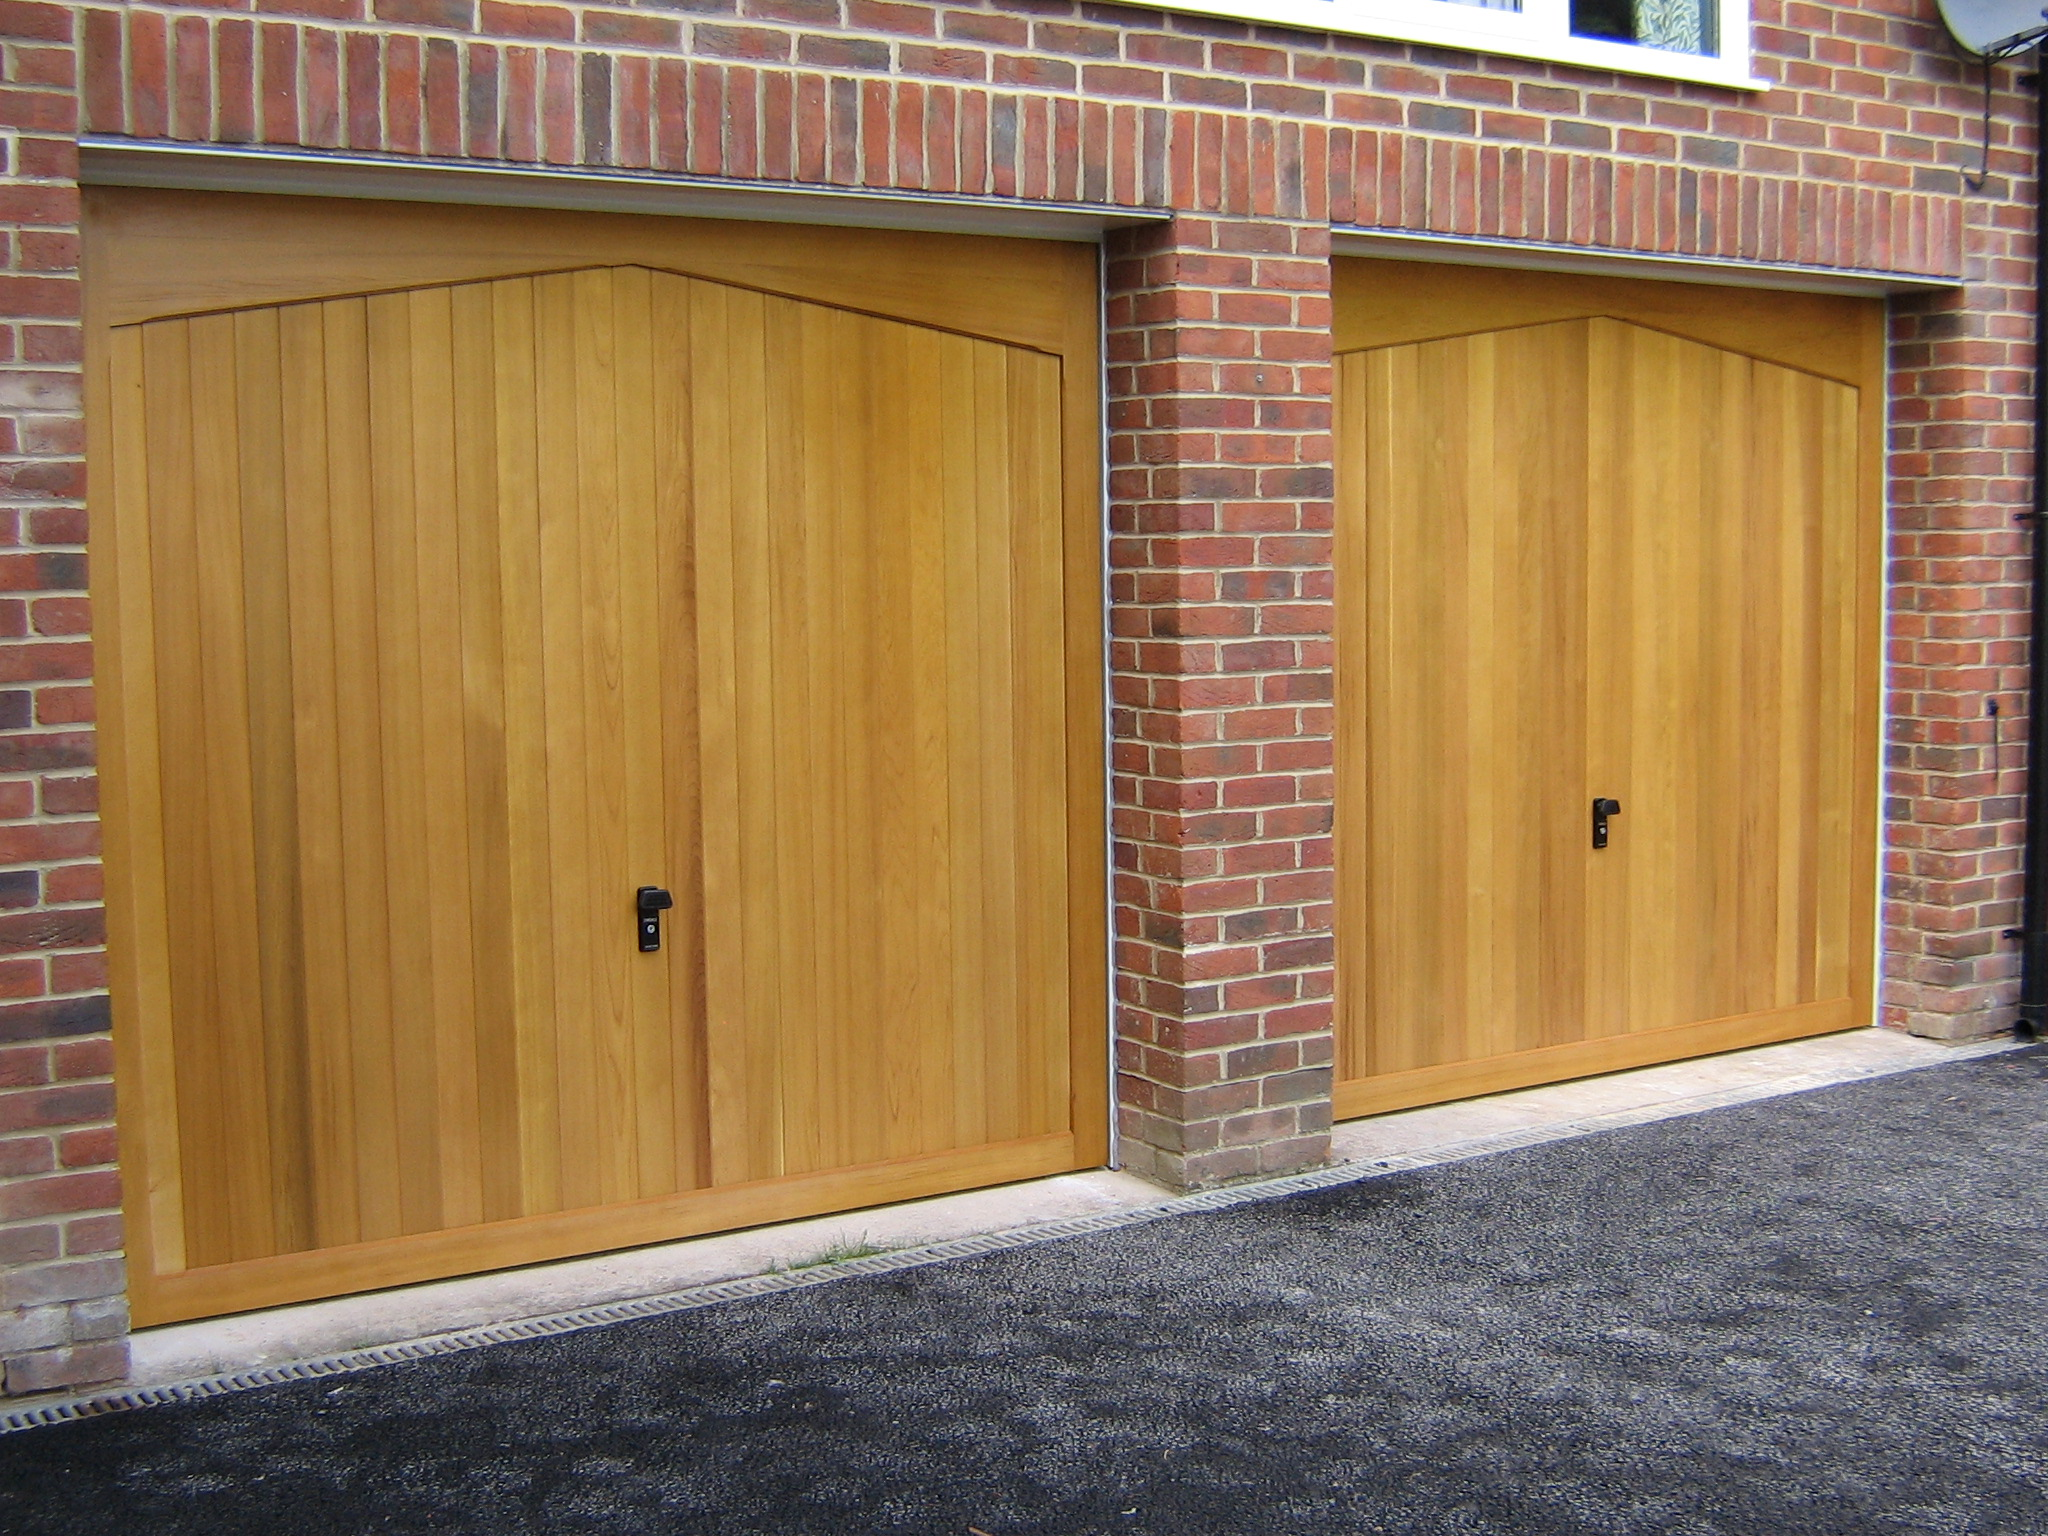 1536 #967035 New Garage Doors Andover Garage Doors Hampshire save image Garage Doors New 36872048